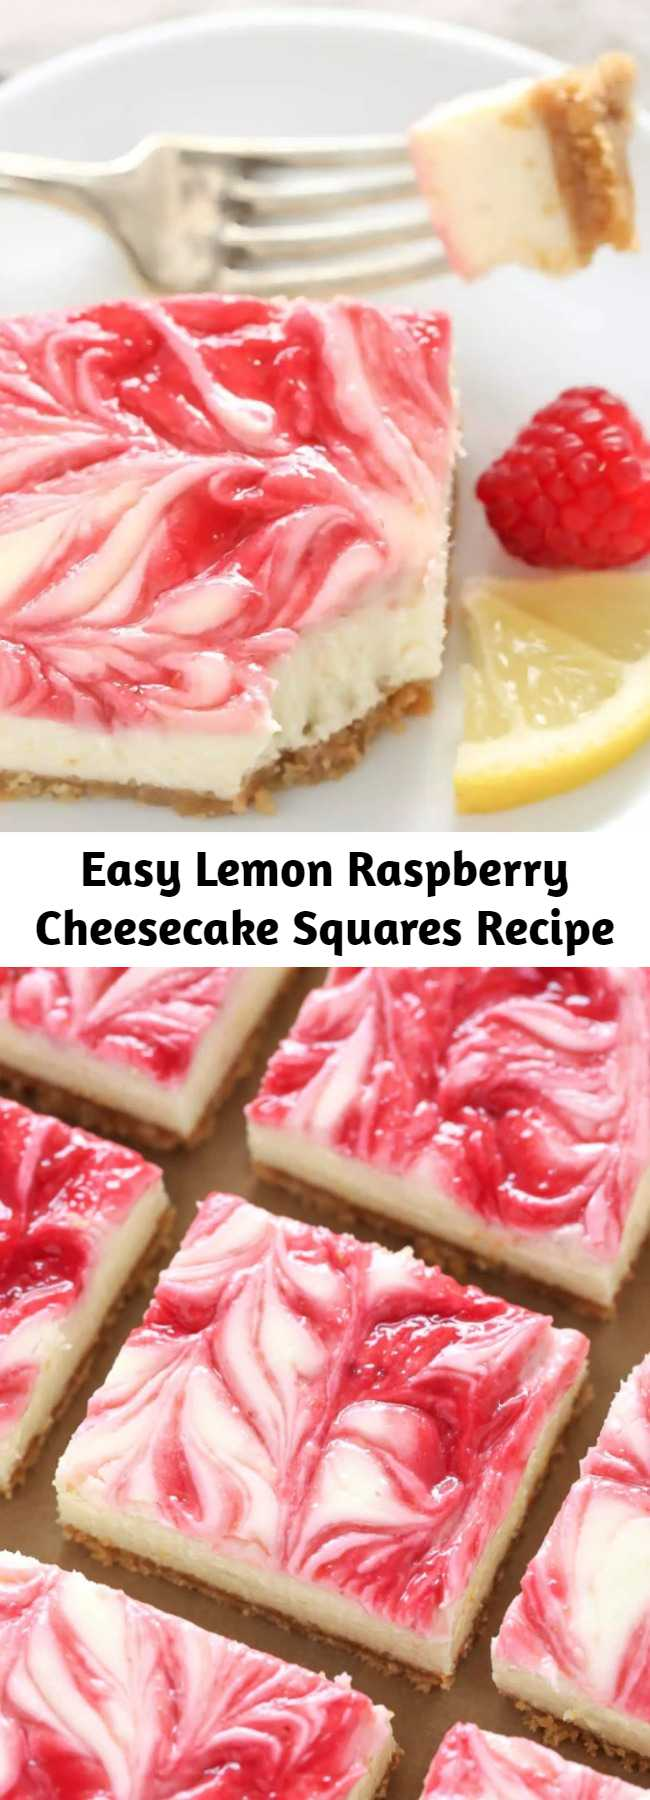 Easy Lemon Raspberry Cheesecake Squares Recipe - These Lemon Raspberry Cheesecake Squares feature a creamy lemon cheesecake filling with a raspberry swirl topped on a homemade graham cracker crust.